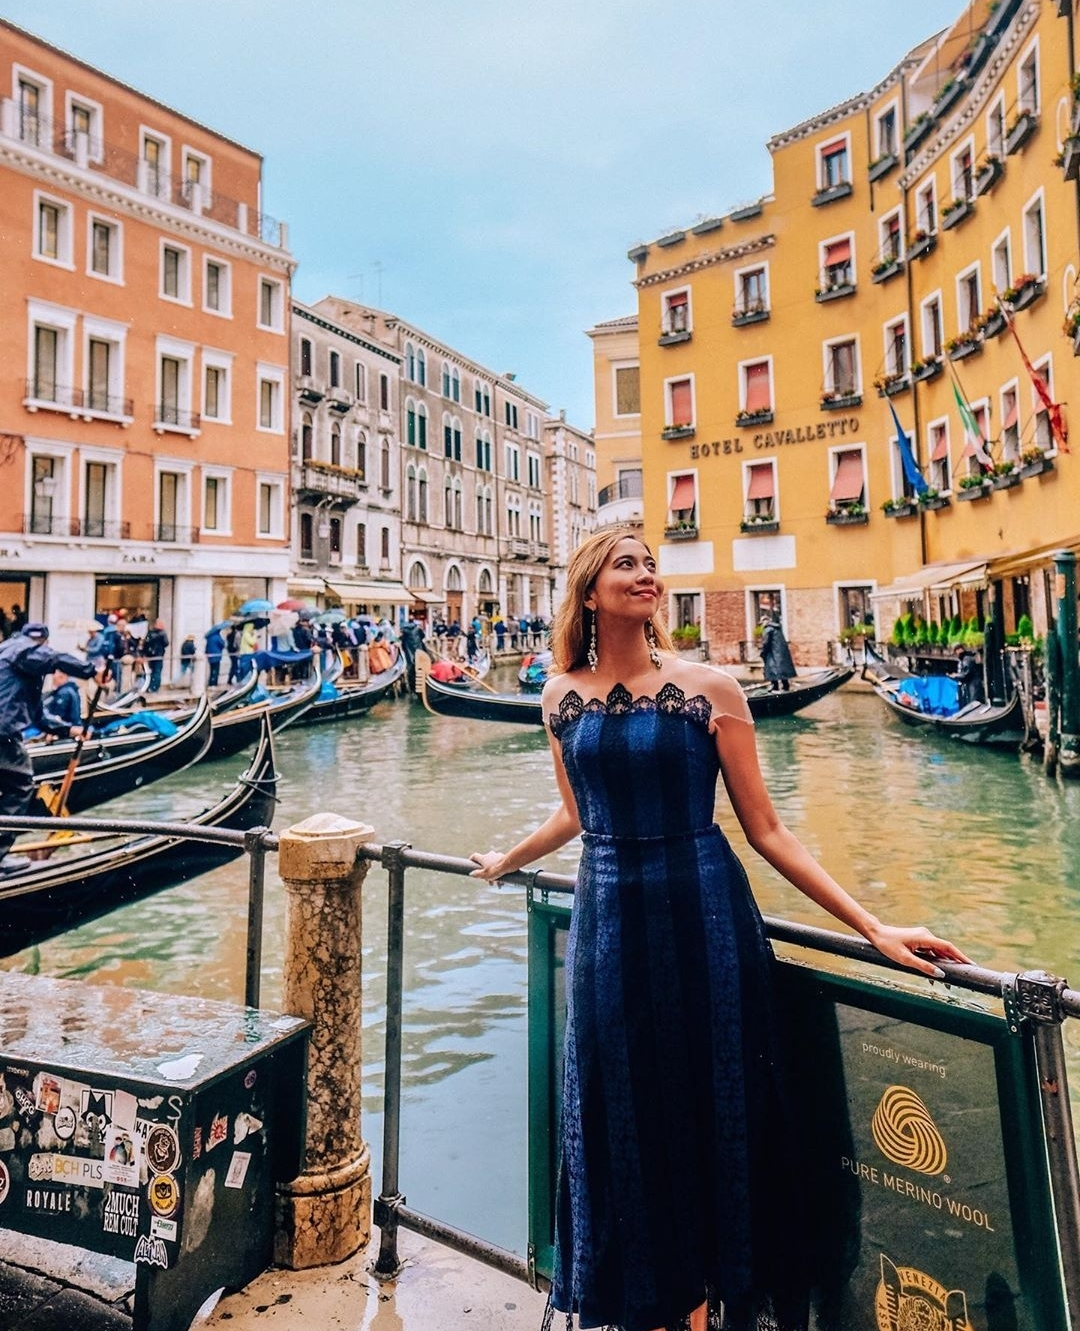 Europe Virtual Tour: Posing by the canals of Venice in Italy